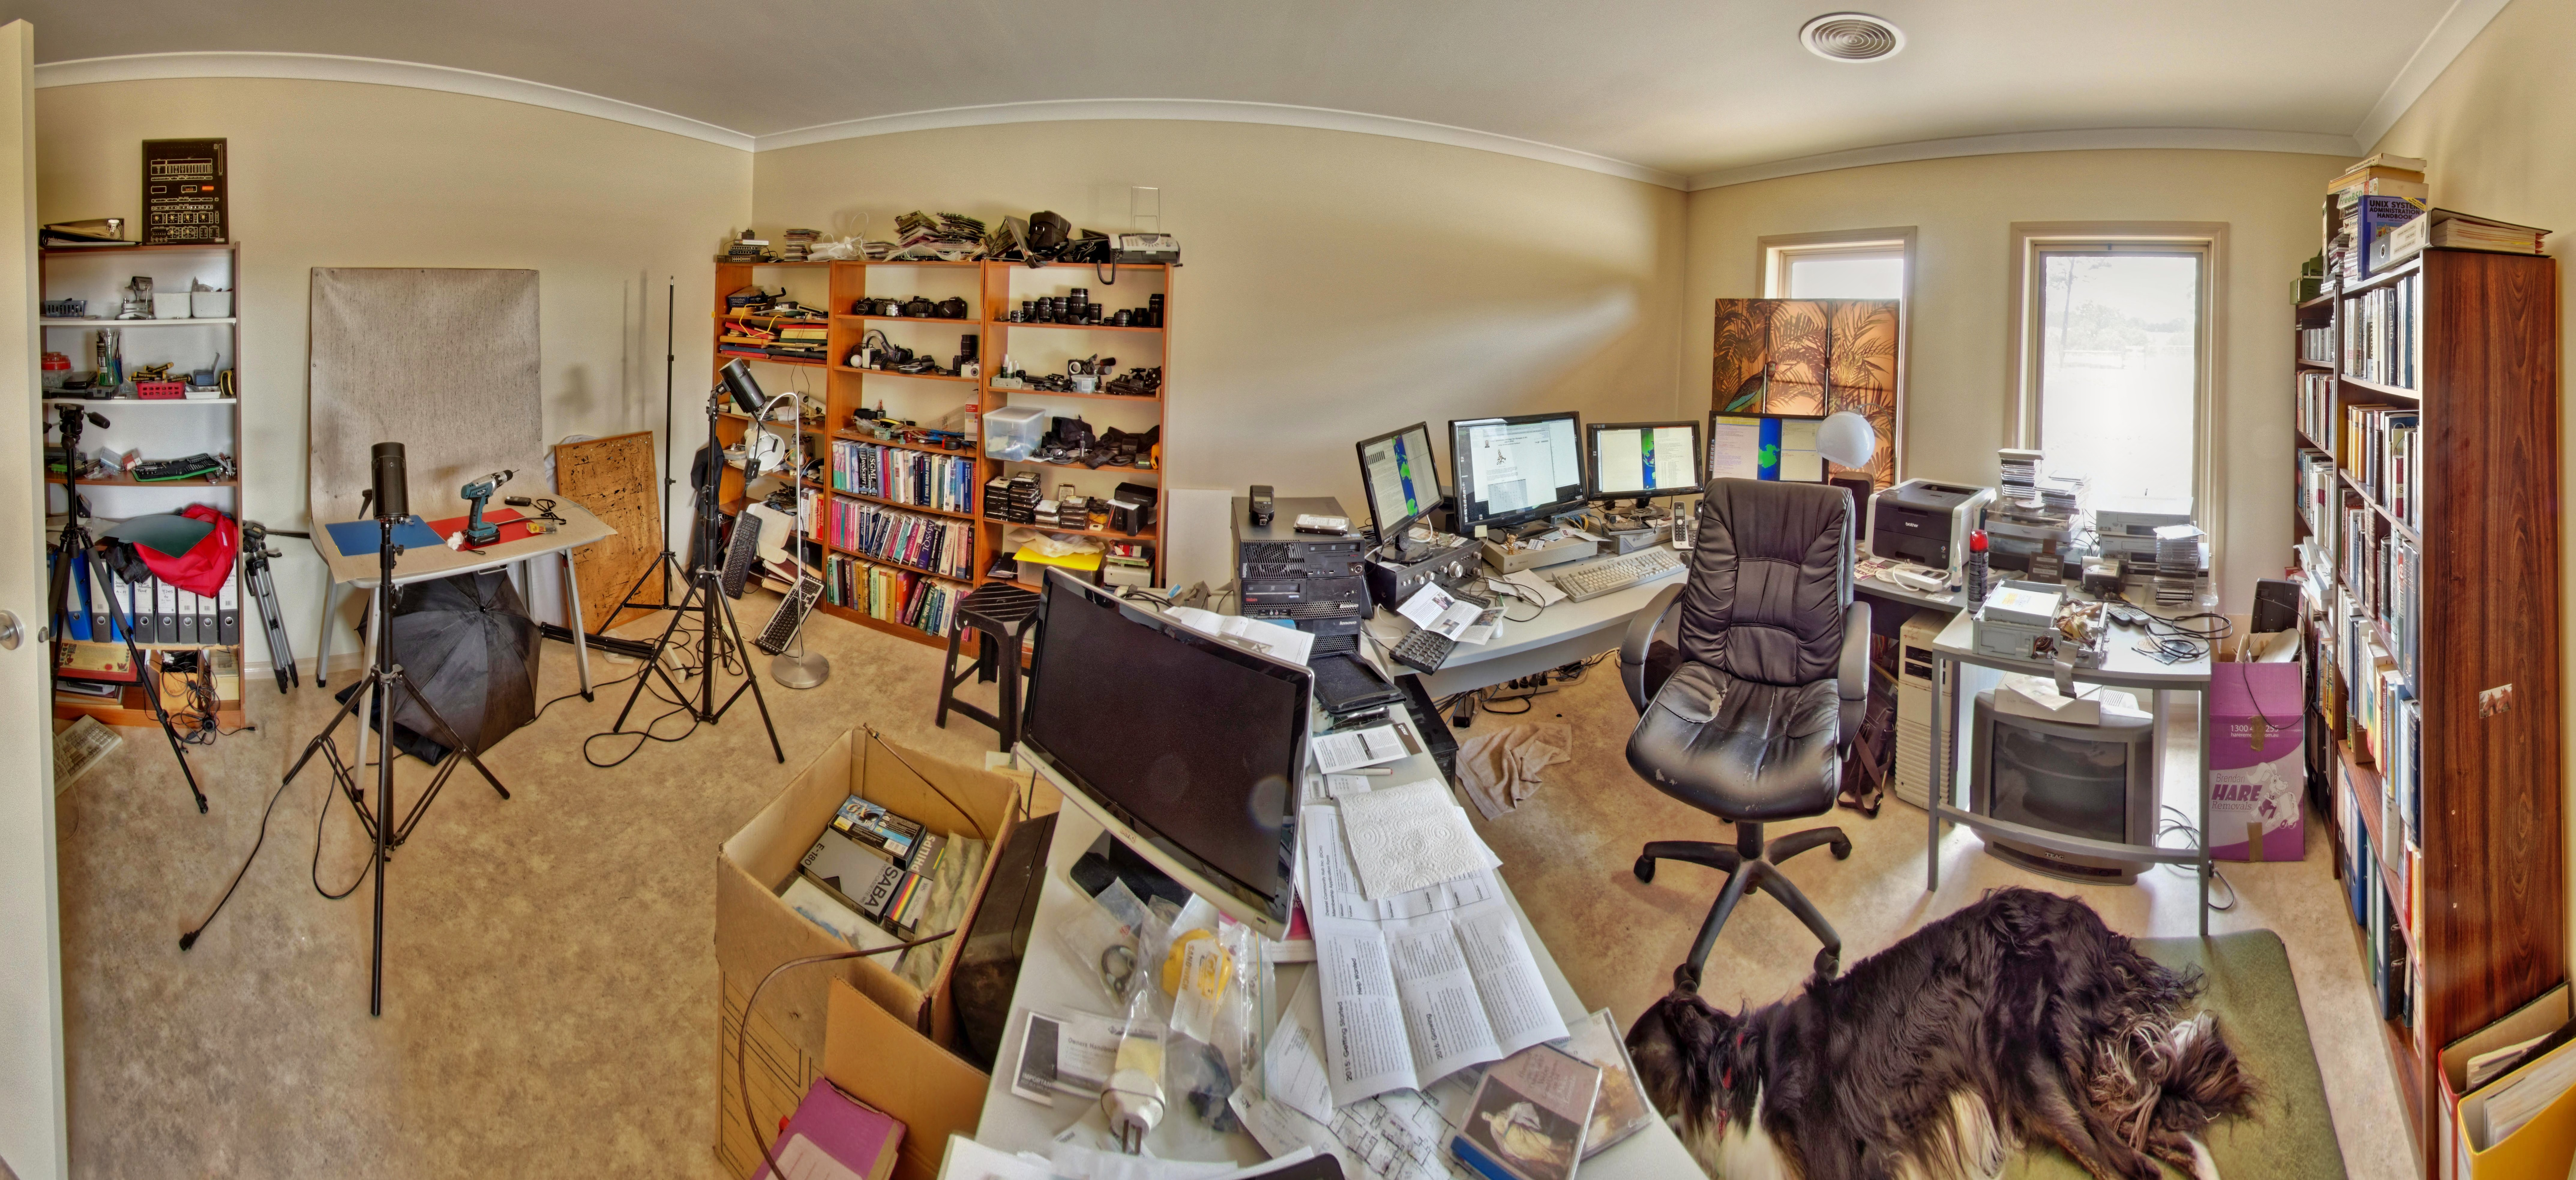 This should be Gregs-office.jpeg.  Is it missing?